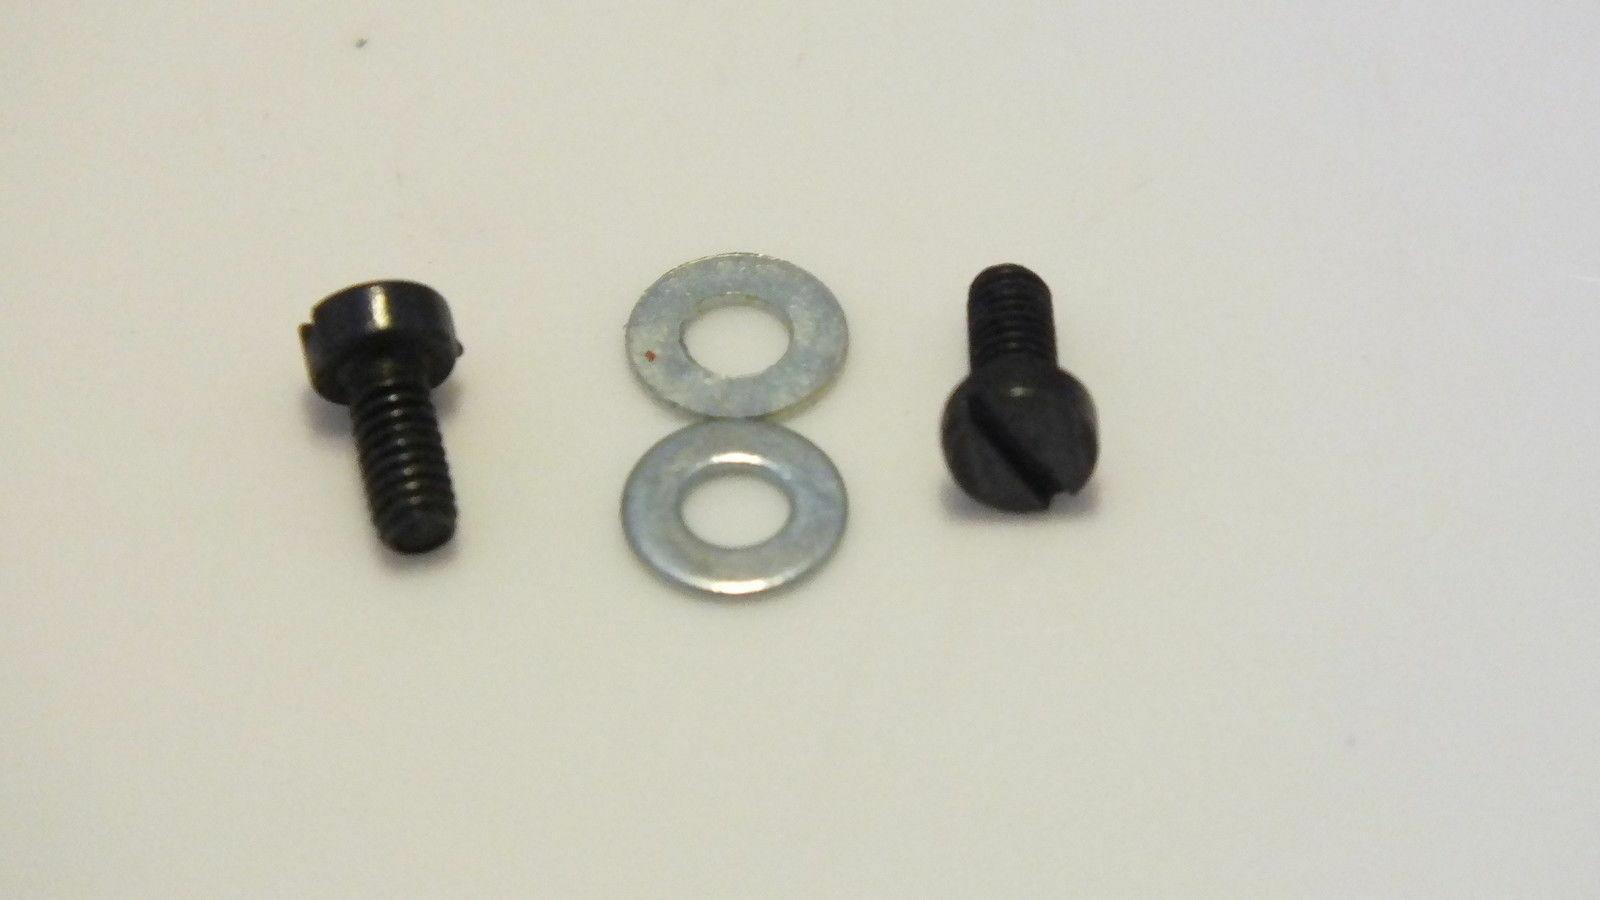 12832/11825  #  HORNBY DUBLO WRENN  REAR PONY 2 x SCREWS AND WASHERS     K12B